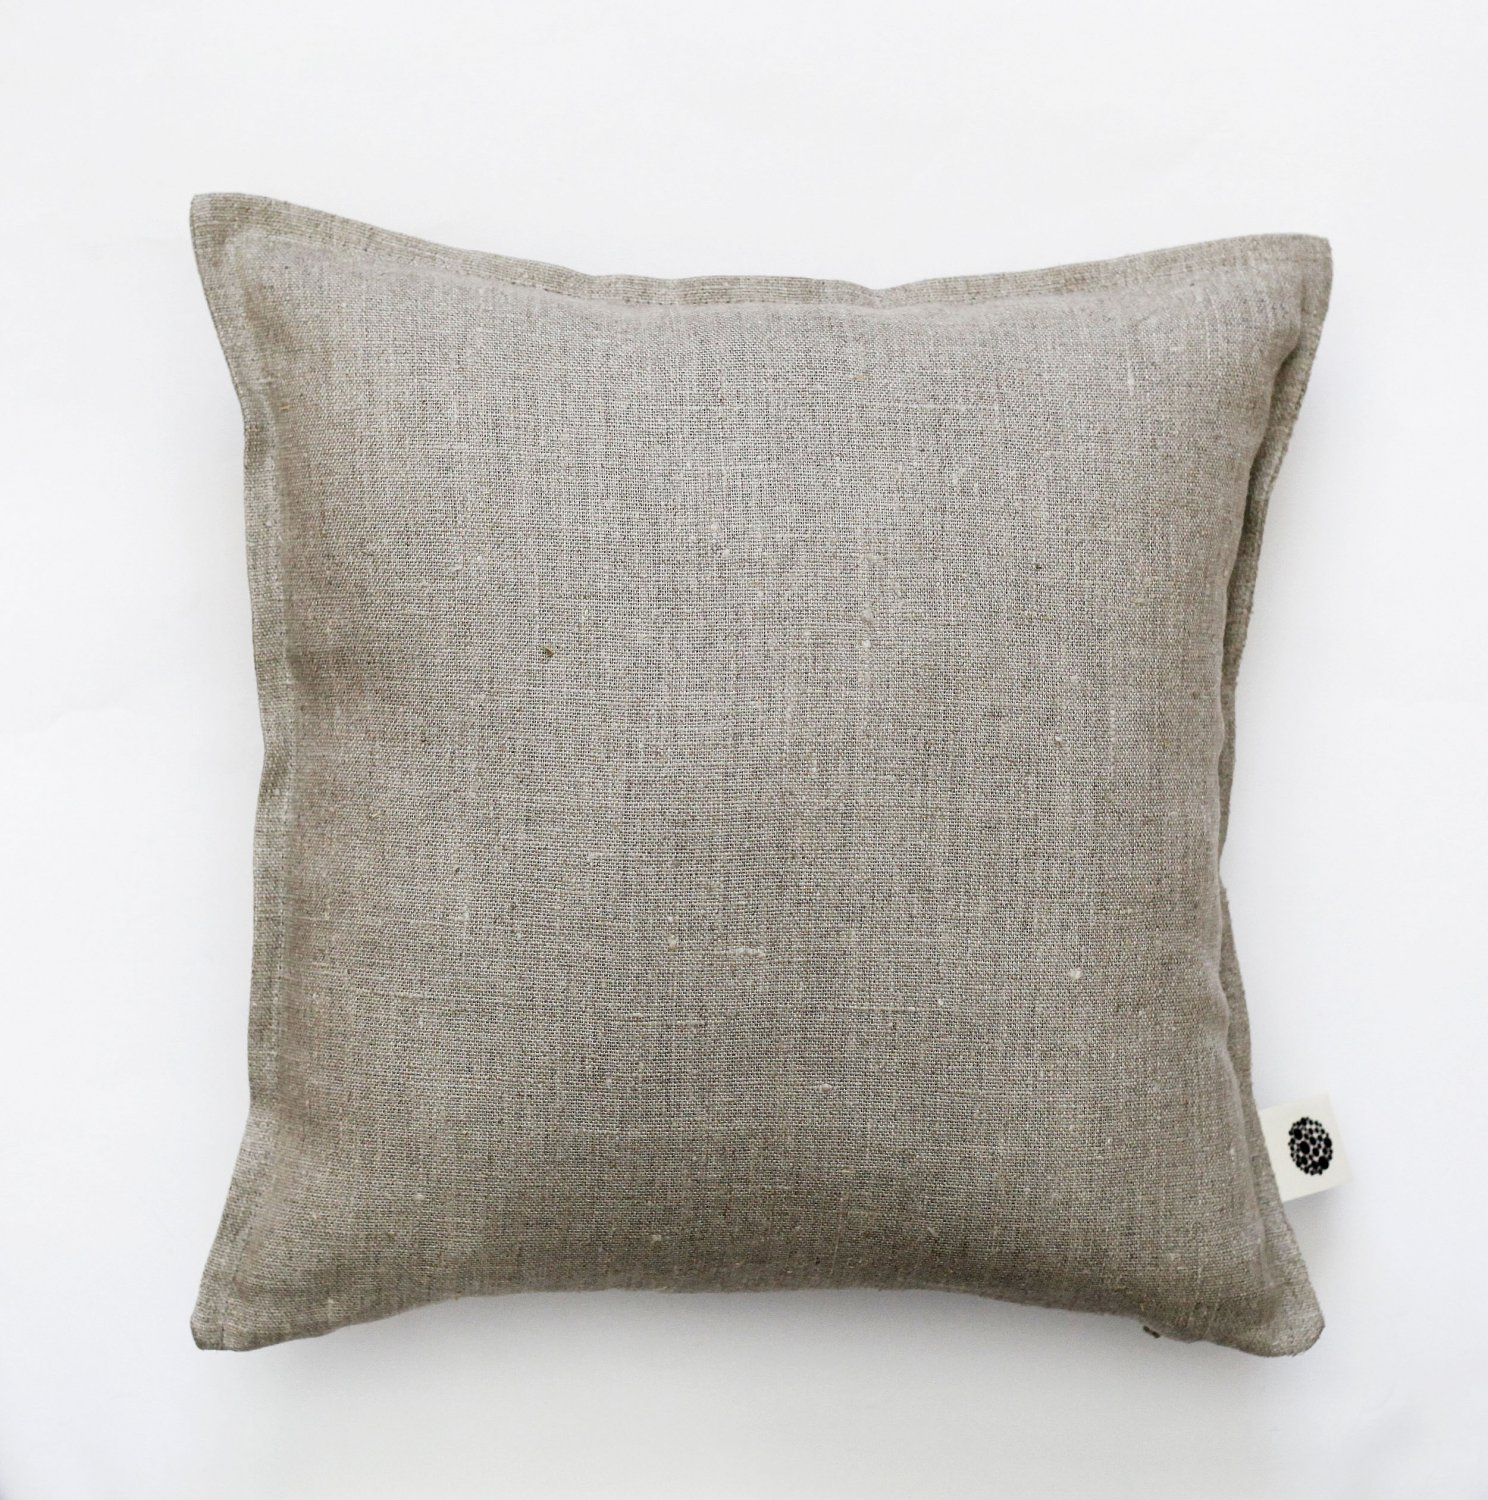 Decorative linen pillow cover 18x18 inch size